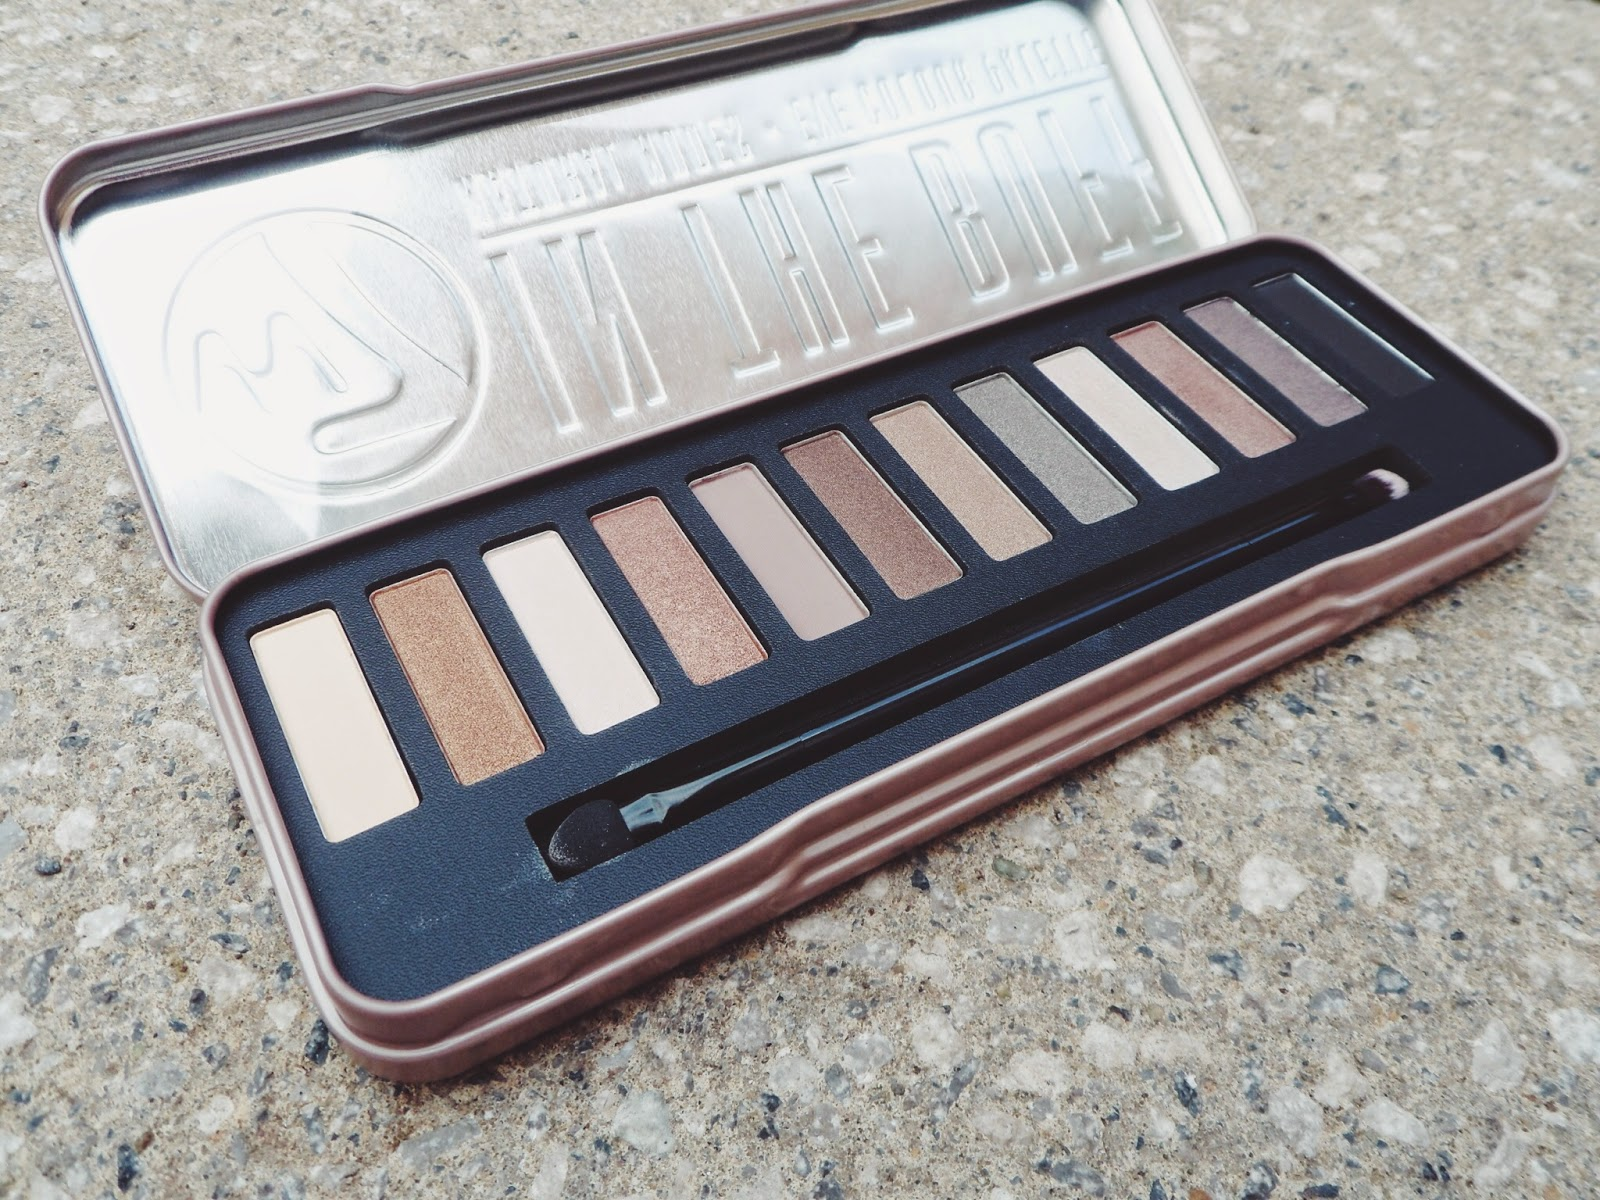 fbloggers, bbloggers, beauty, beautyblogger, beautyproduct, productreview, wiw, whatibought, motd, w7inthebuff, inthebuff, w7, urbandecay, nakedpalette, urbandecaynakedpalette